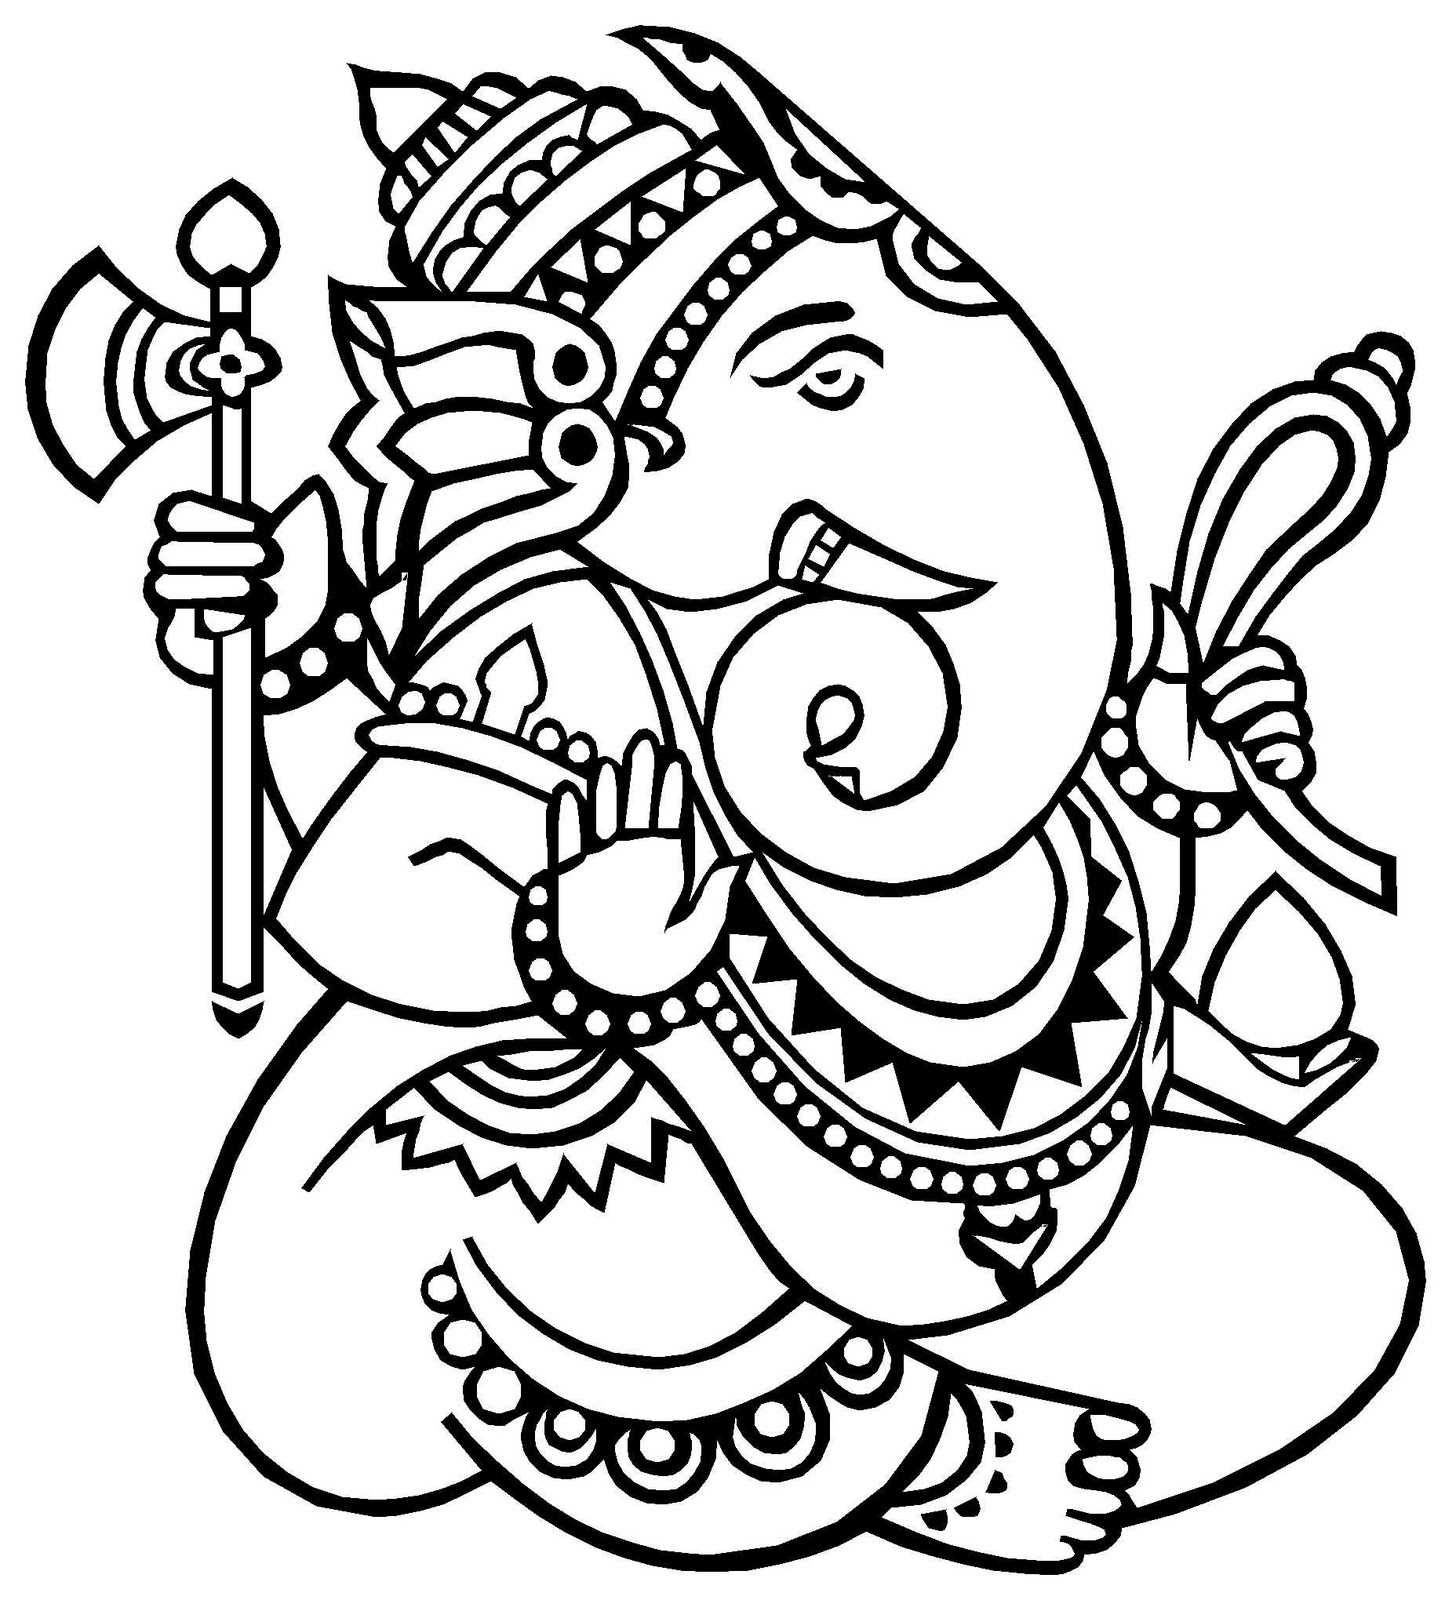 Ganesh Outline - Cliparts.co